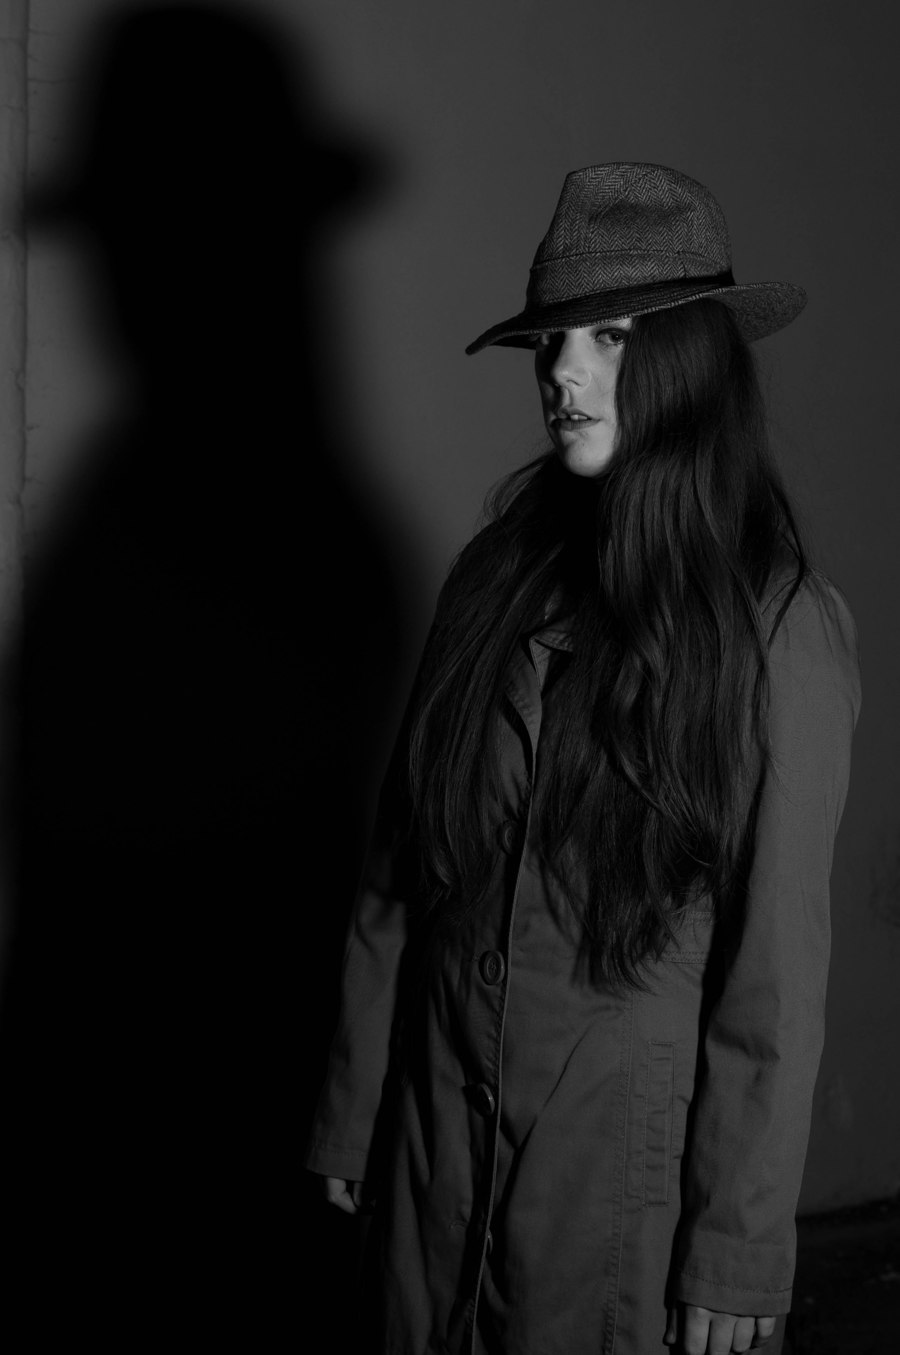 A Fim Noir night with Josie 2 / Photography by AndrewN / Uploaded 31st October 2016 @ 03:20 PM